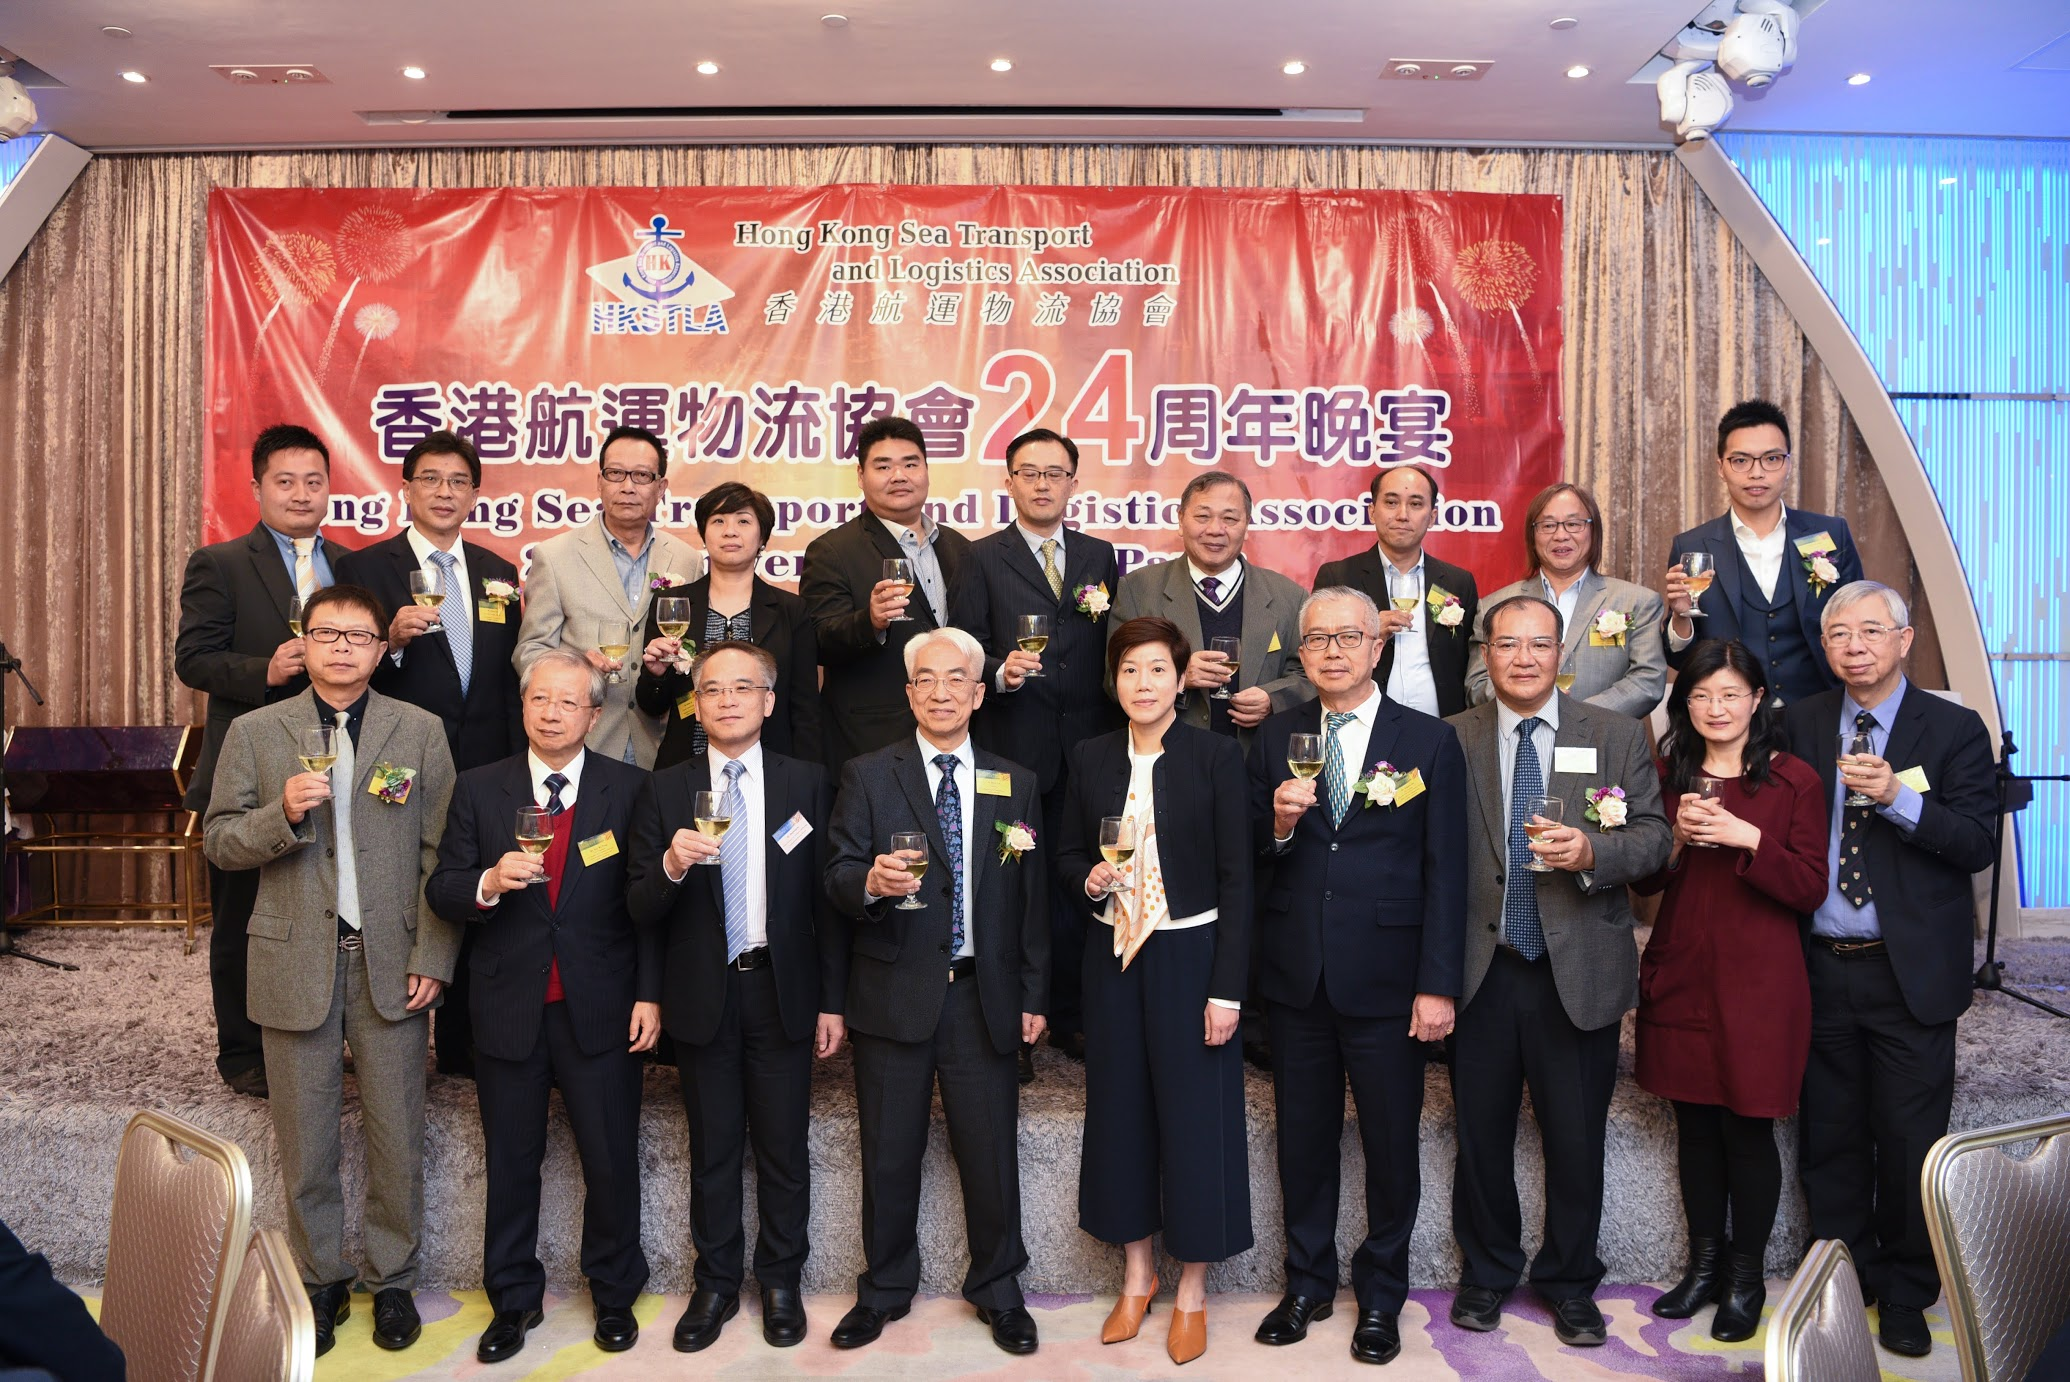 HKSTLA 24th annual dinner